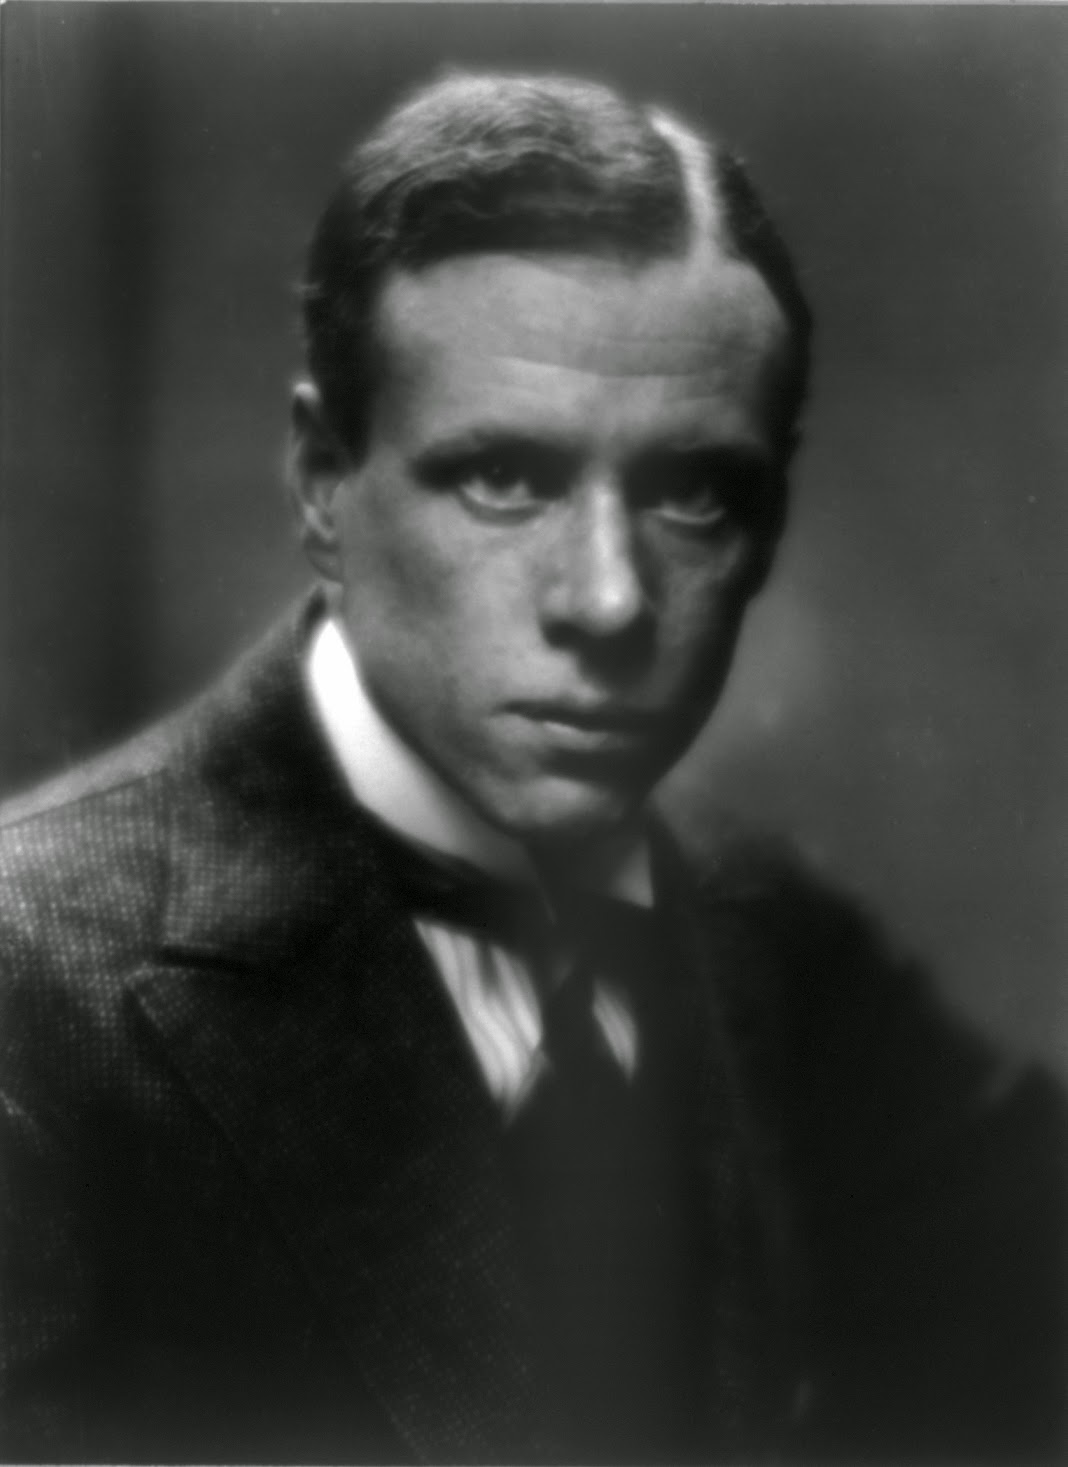 Photo of Sinclair Lewis. Image Source: http://upload.wikimedia.org/wikipedia/commons/6/6c/Lewis-Sinclair-LOC.jpg